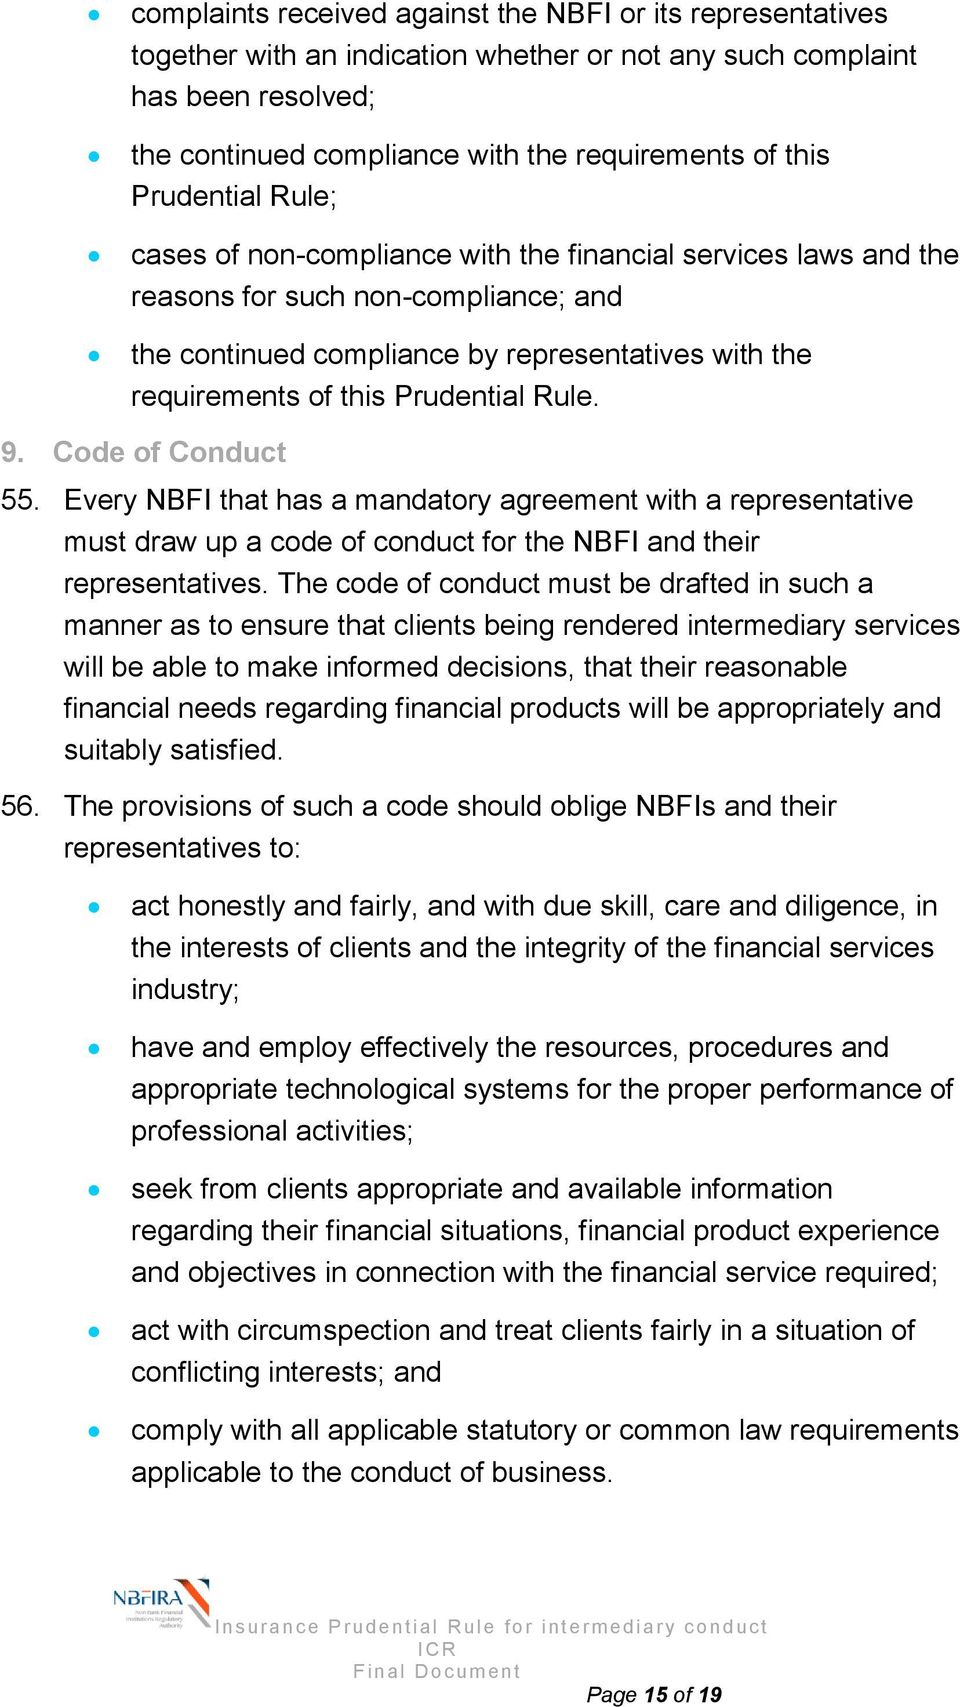 Prudential Rule. 9. Code of Conduct 55. Every NBFI that has a mandatory agreement with a representative must draw up a code of conduct for the NBFI and their representatives.